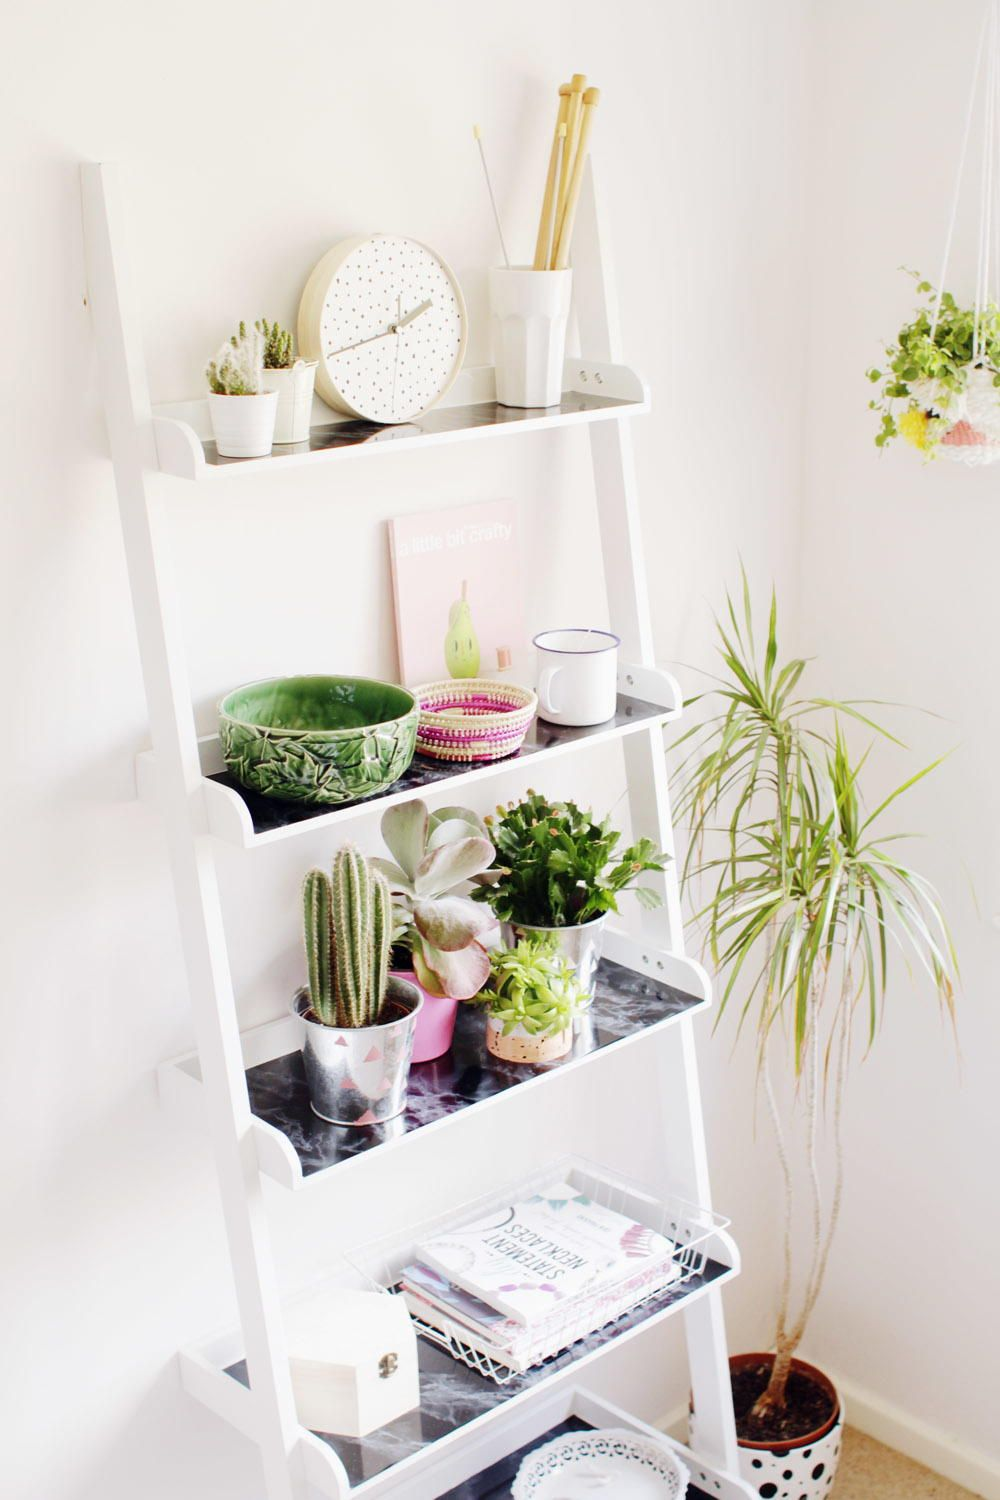 Diy ladder shelf hack diy building pinterest shelves